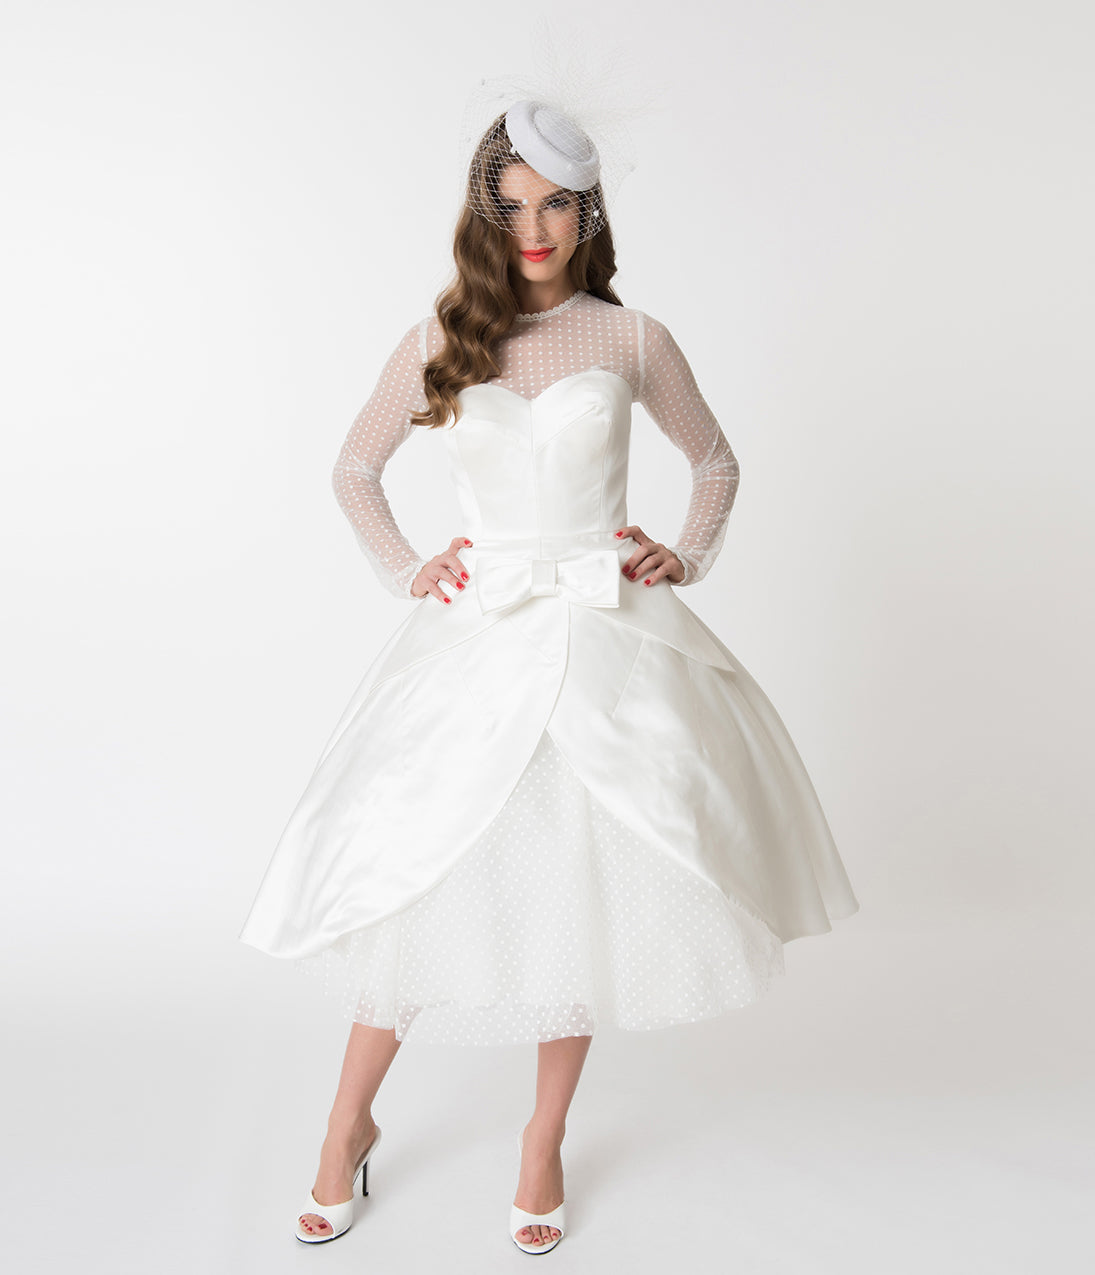 Vintage Wedding Dresses In London: 50s Wedding Dress, 1950s Style Wedding Dresses, Rockabilly